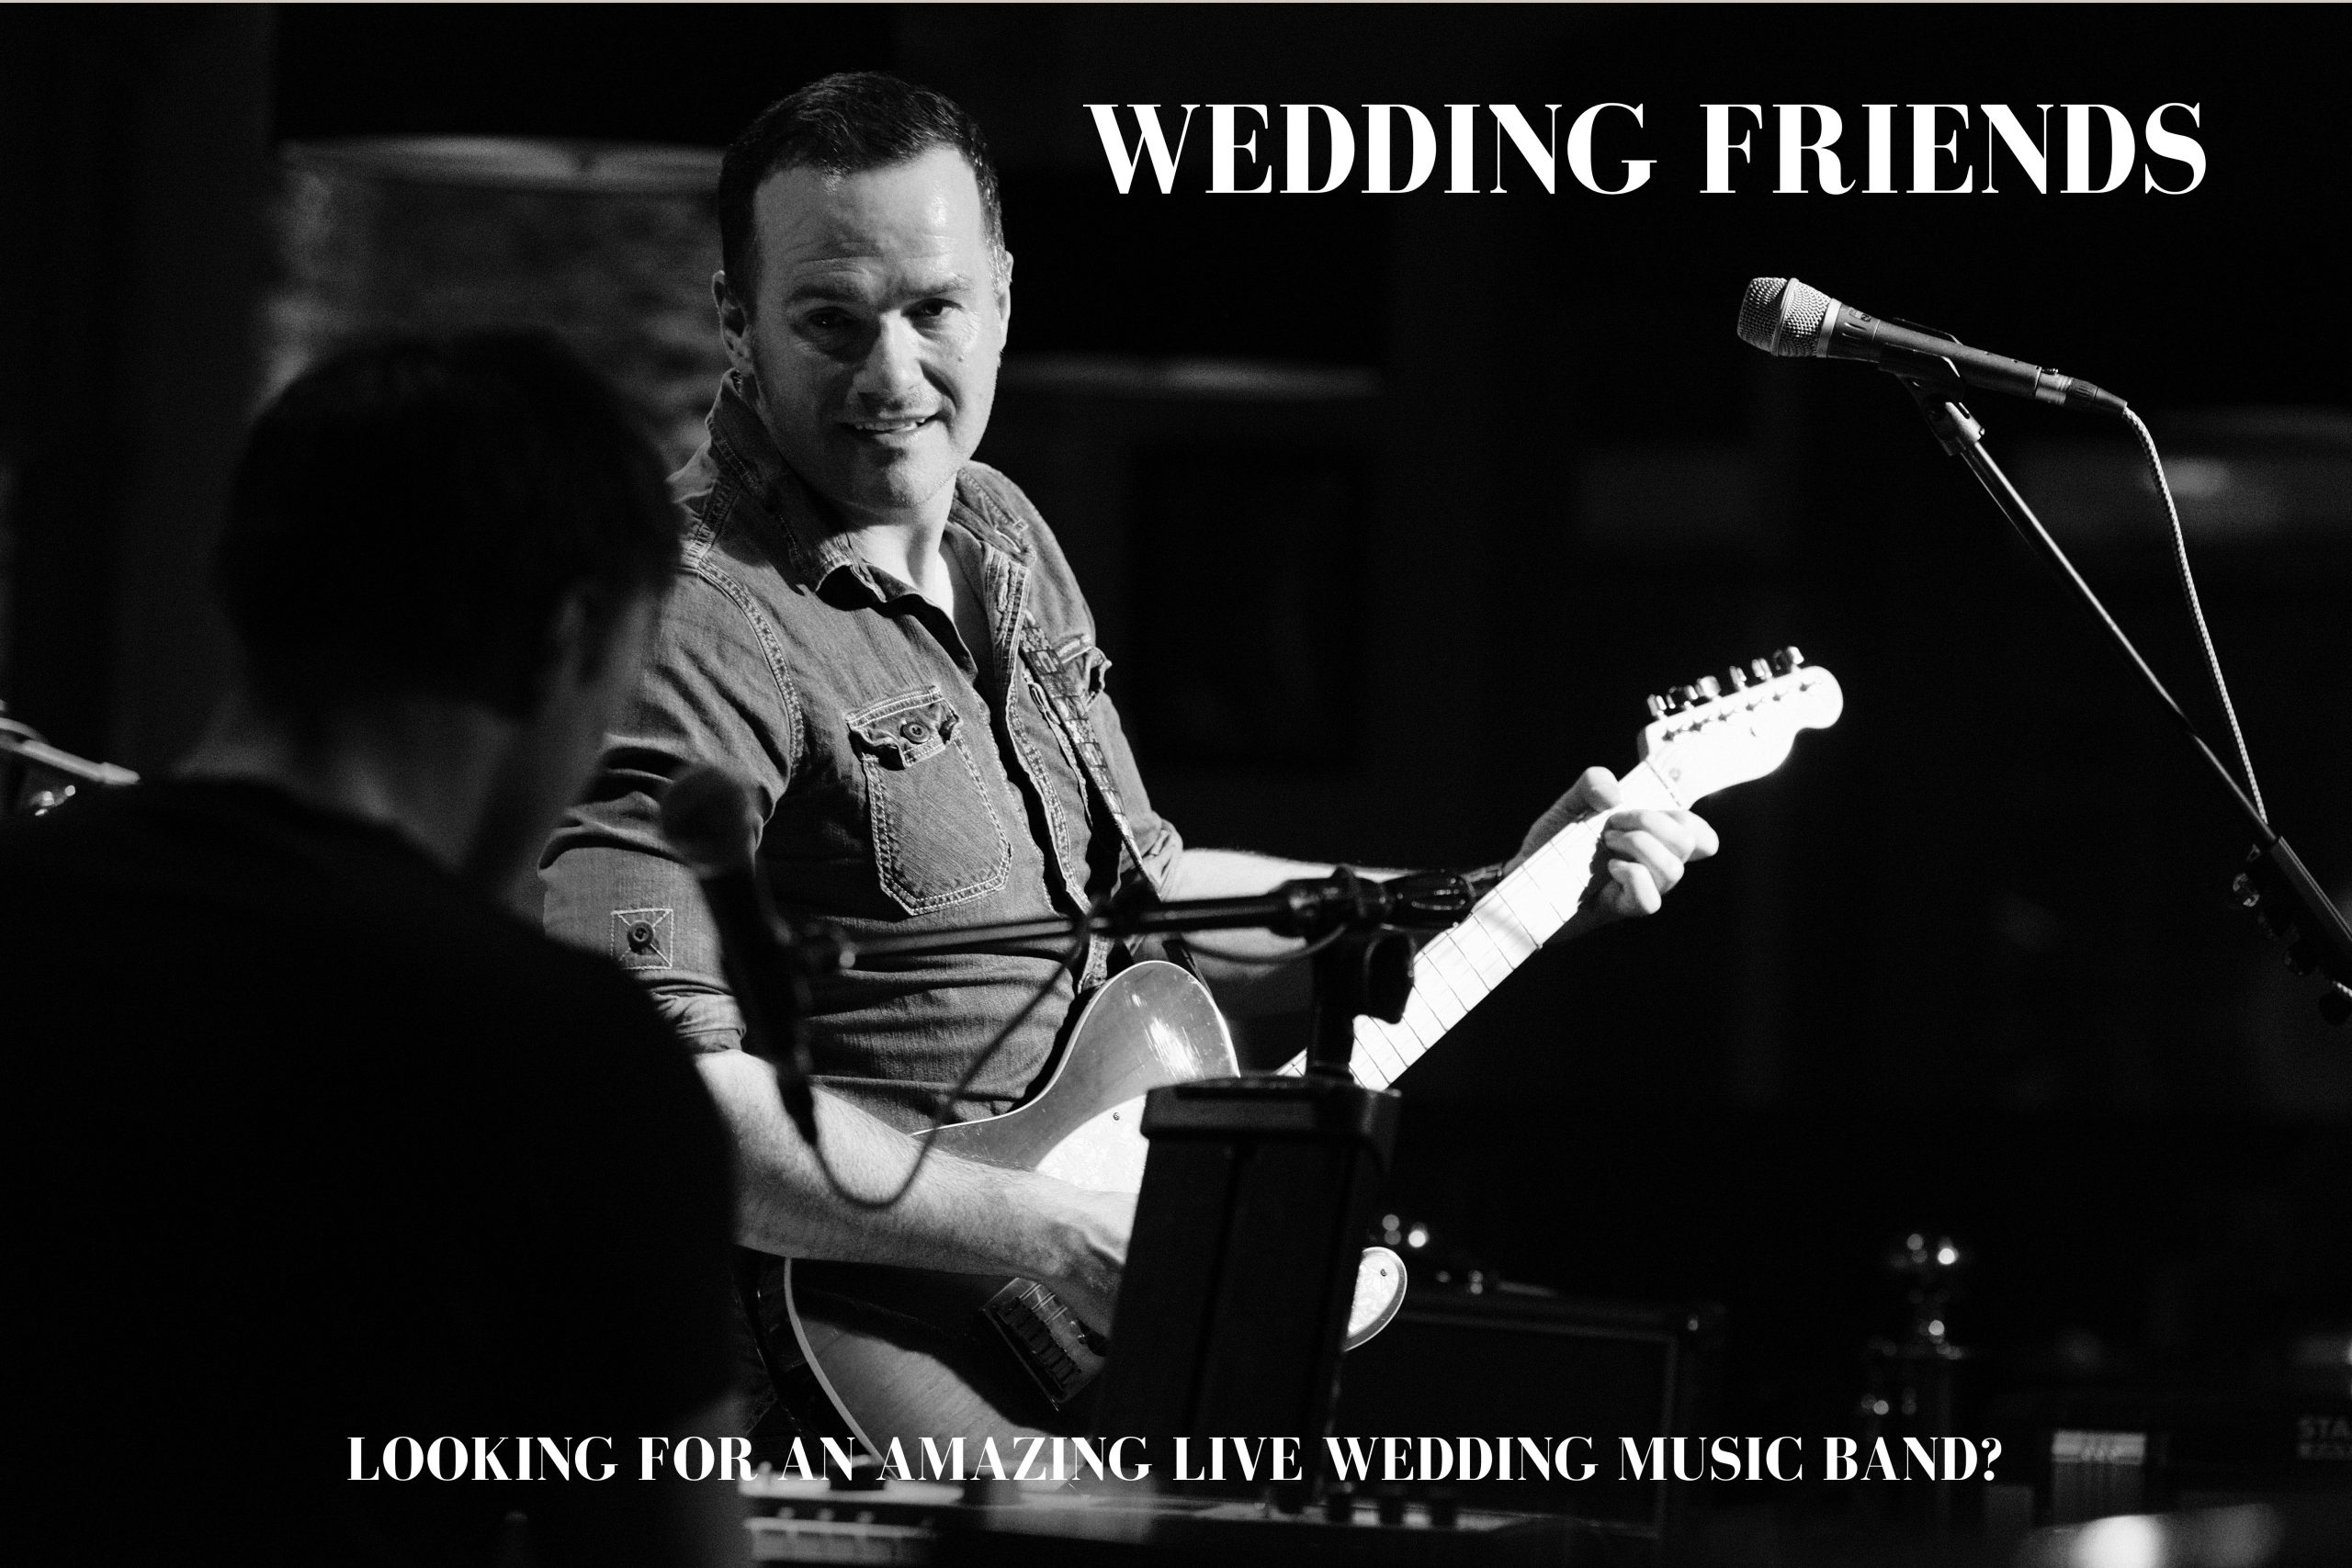 Nottingham Live Wedding Music Band - Lead Singer playing guitar and singing